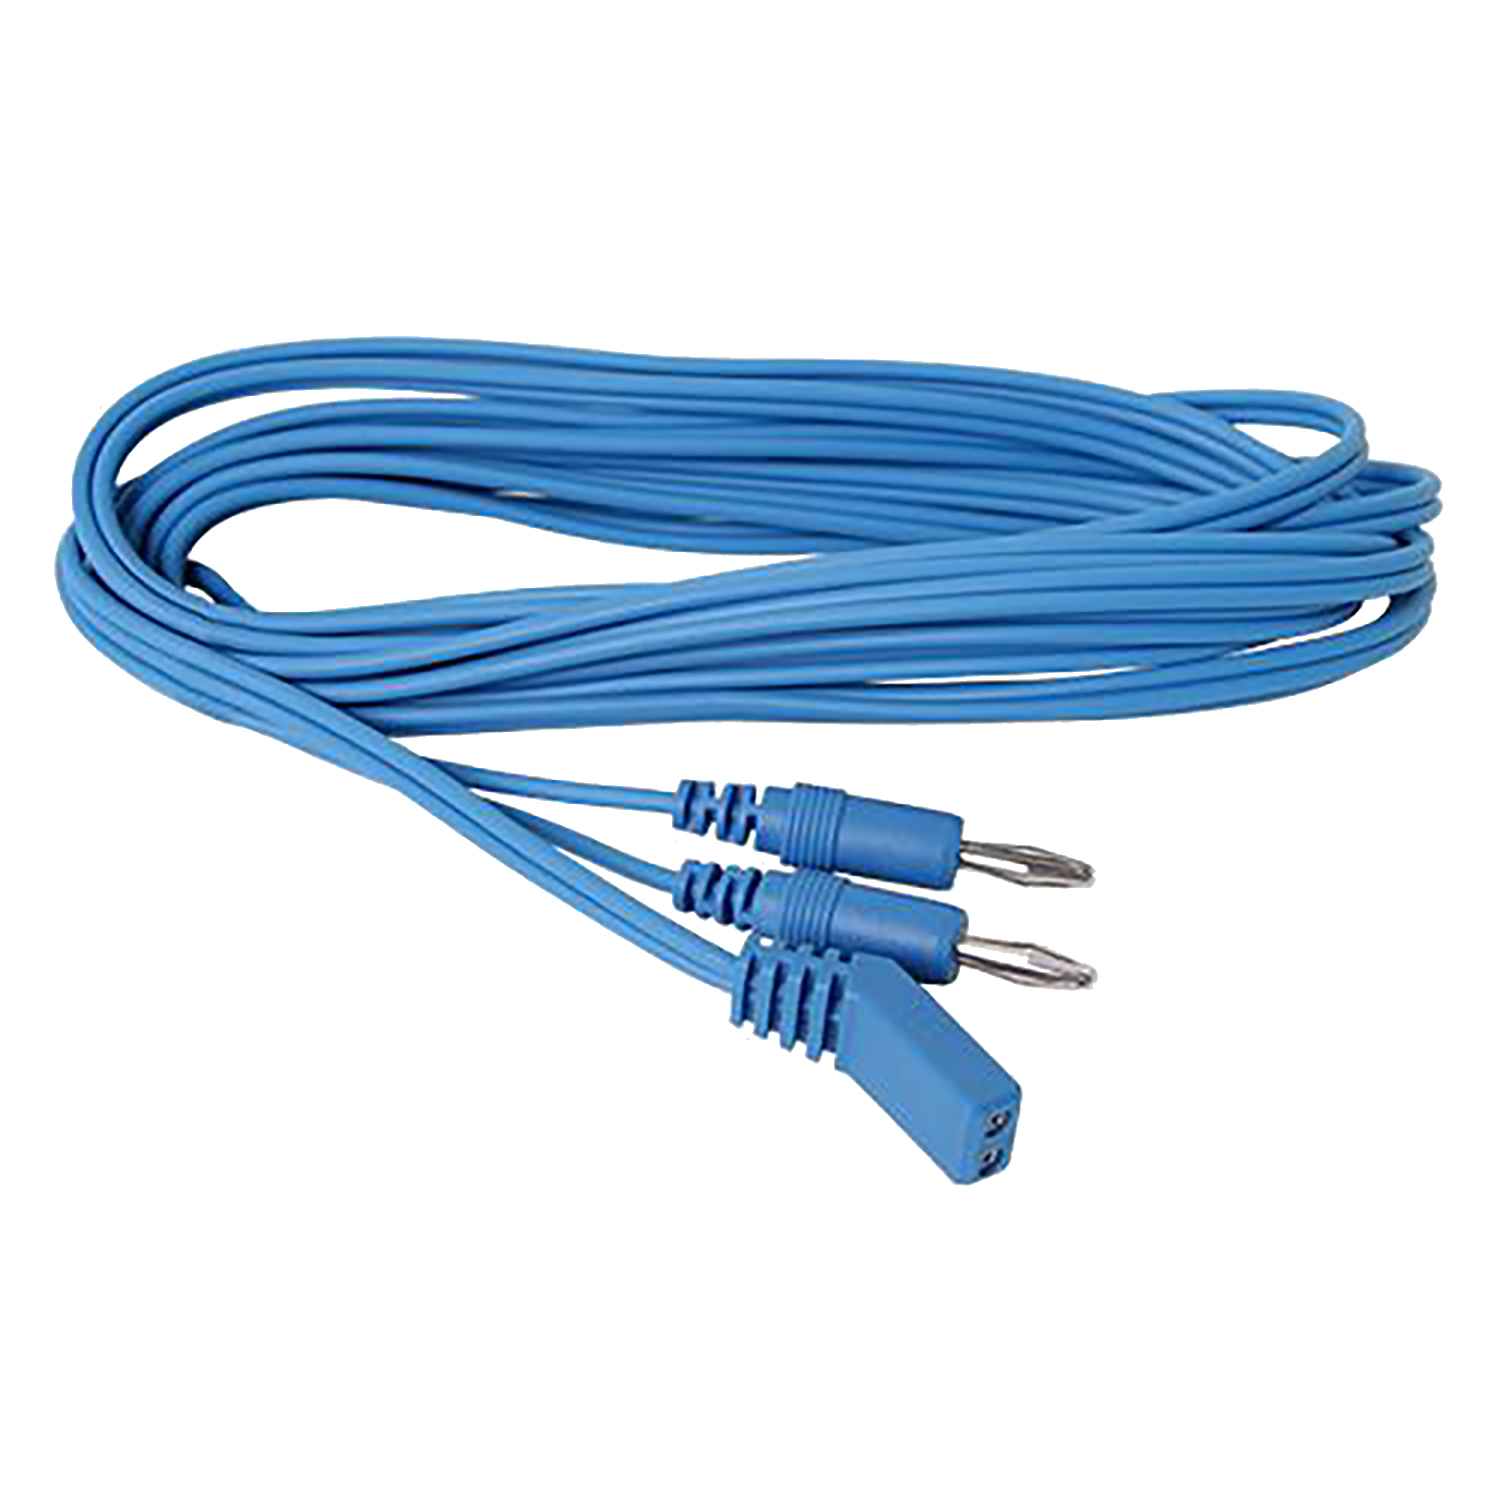 Valleylab Bipolar Cable